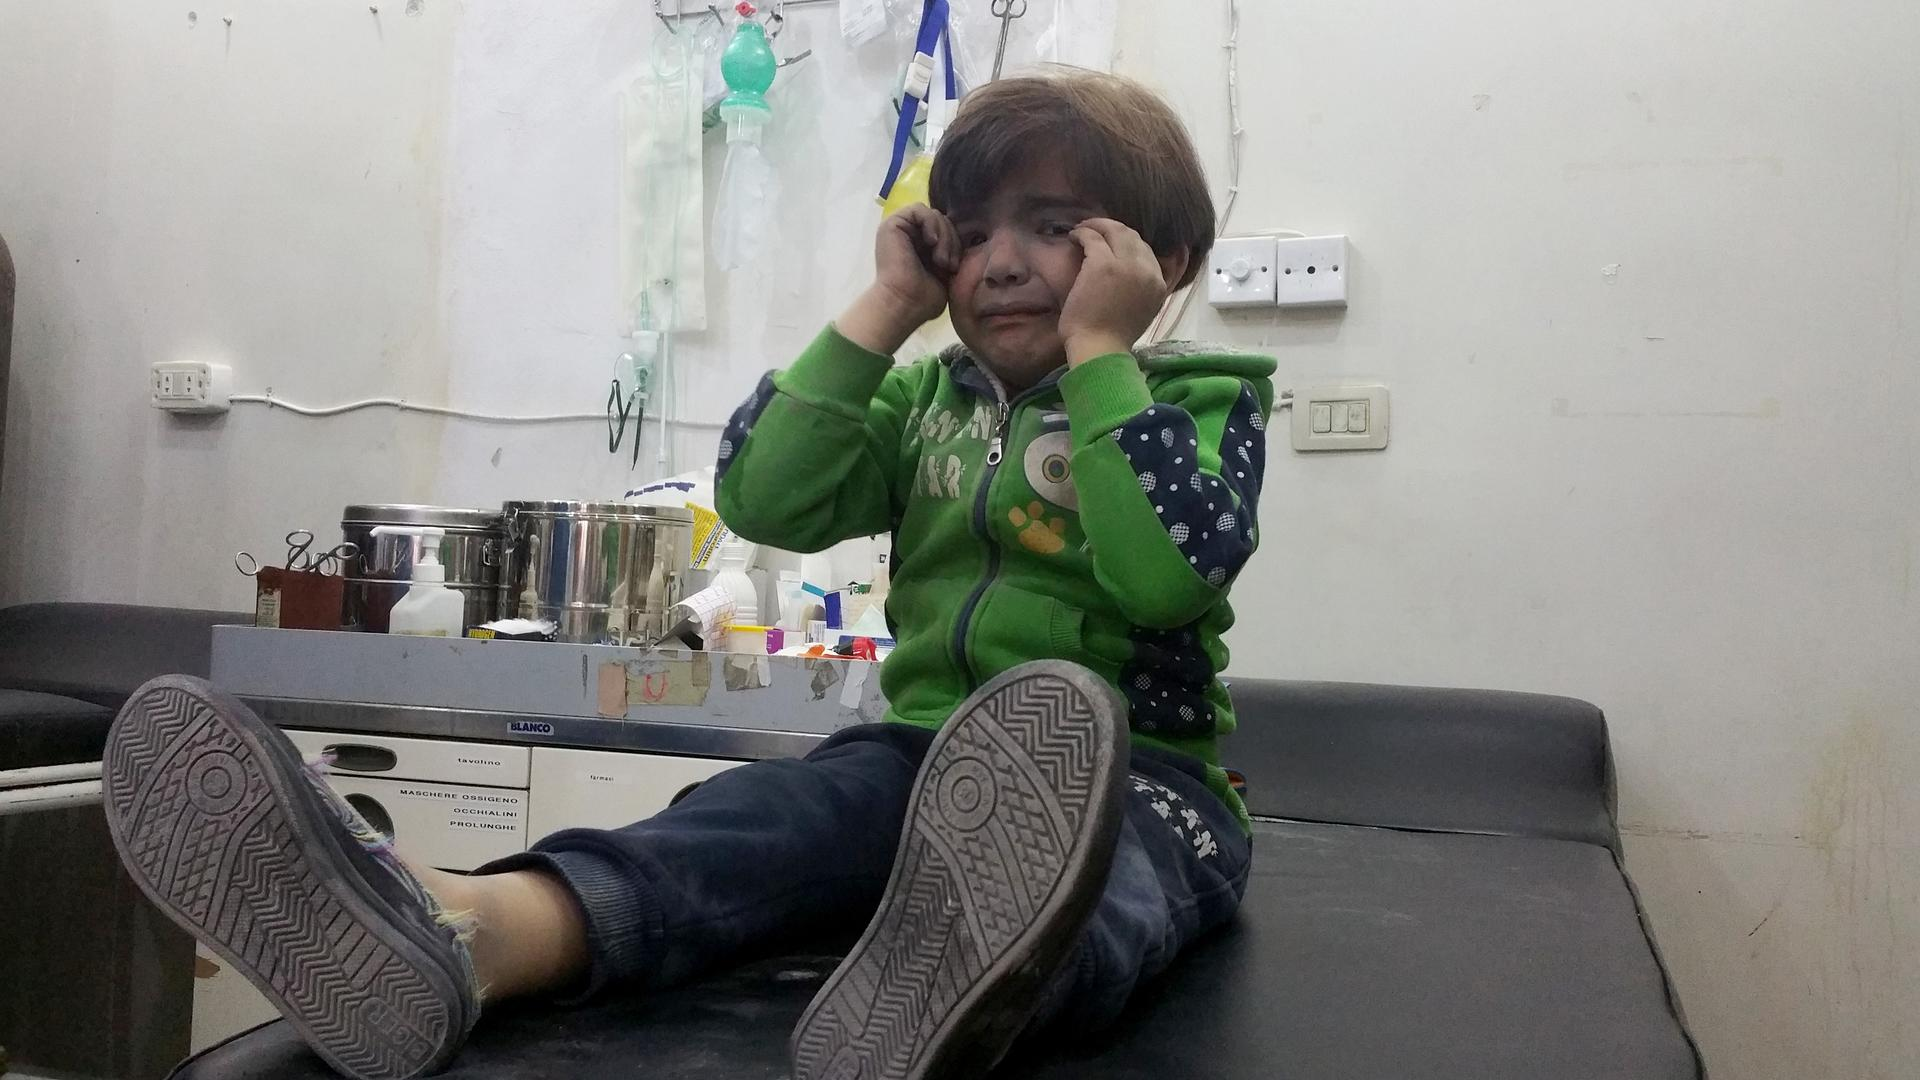 A child gets treatment at a hospital after a suspected chemical gas attack in the town of Khan Shaykhun in Idlib, Syria. Photo by Bahjat Najar/Anadolu Agency/Getty Images